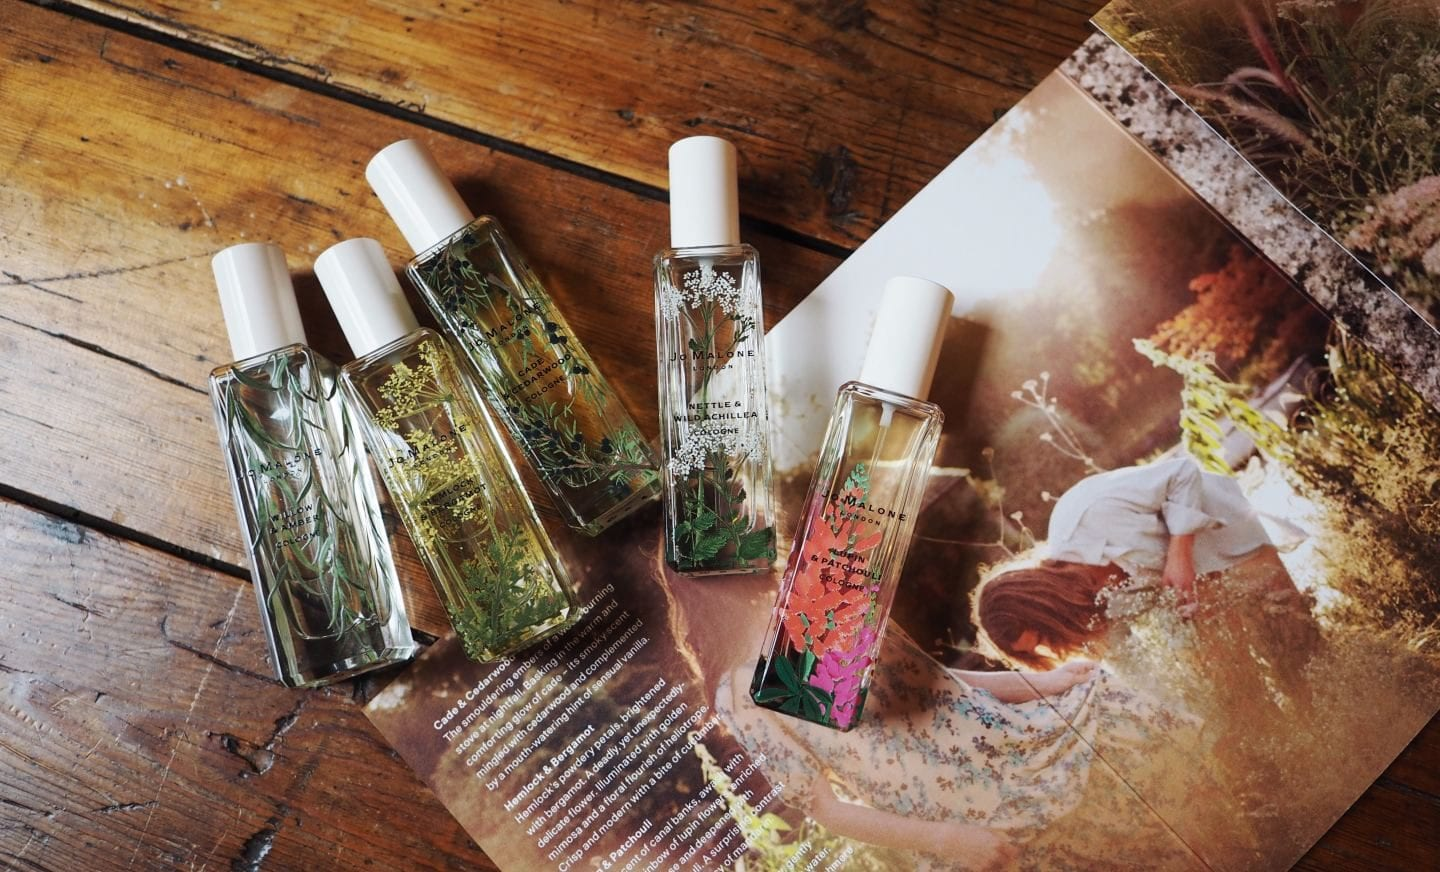 Jo Malone London 'Wild flowers & Weeds' Collection